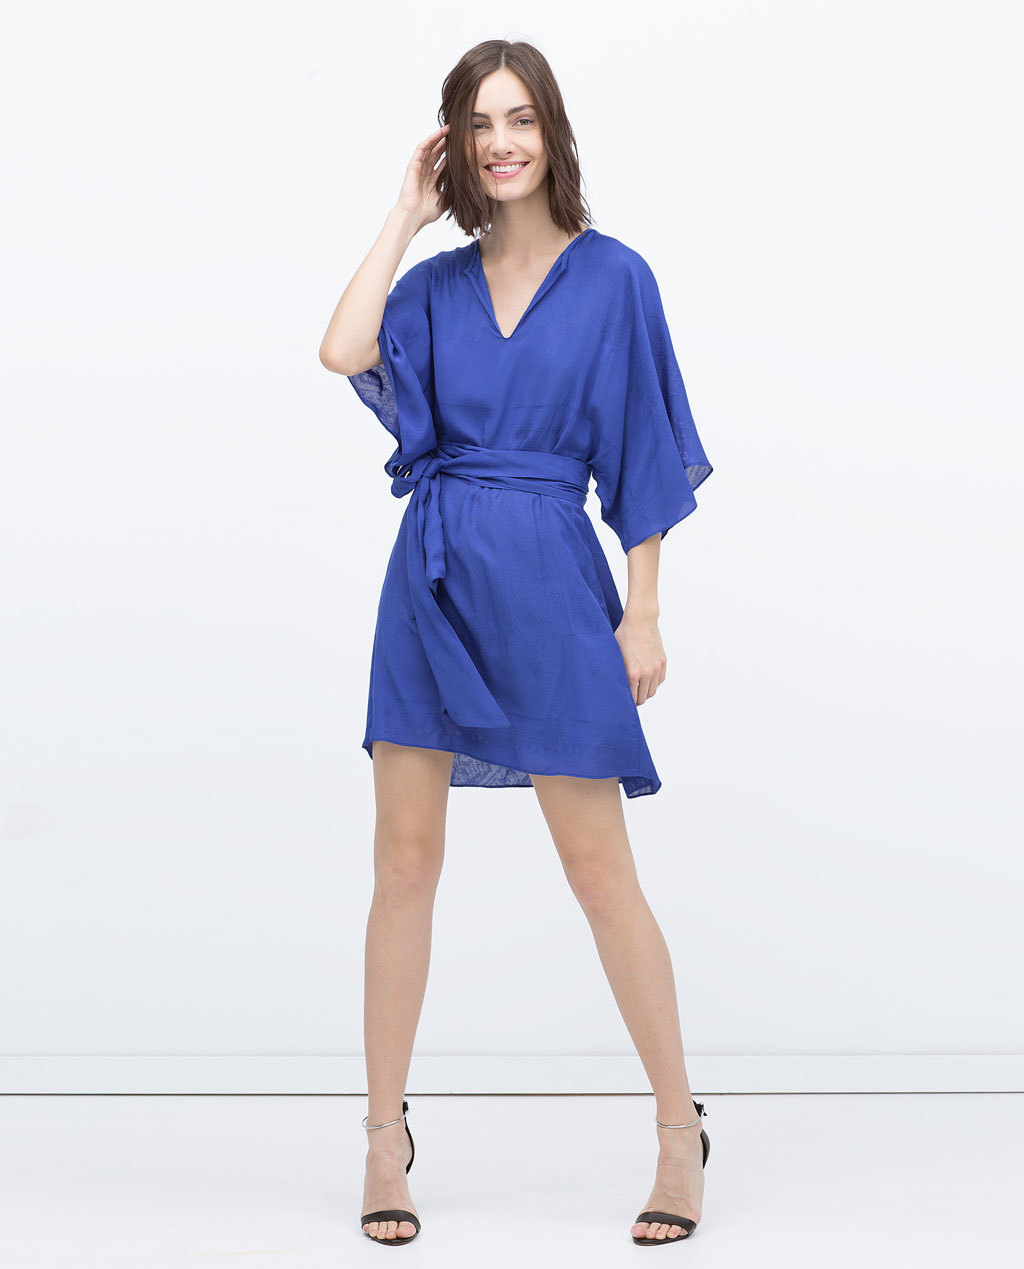 Jacquard Viscose Dress - length: mid thigh; neckline: v-neck; sleeve style: angel/waterfall; fit: fitted at waist; pattern: plain; style: blouson; waist detail: belted waist/tie at waist/drawstring; predominant colour: royal blue; occasions: evening, occasion; fibres: viscose/rayon - 100%; hip detail: subtle/flattering hip detail; sleeve length: 3/4 length; pattern type: fabric; texture group: brocade/jacquard; season: s/s 2015; wardrobe: event